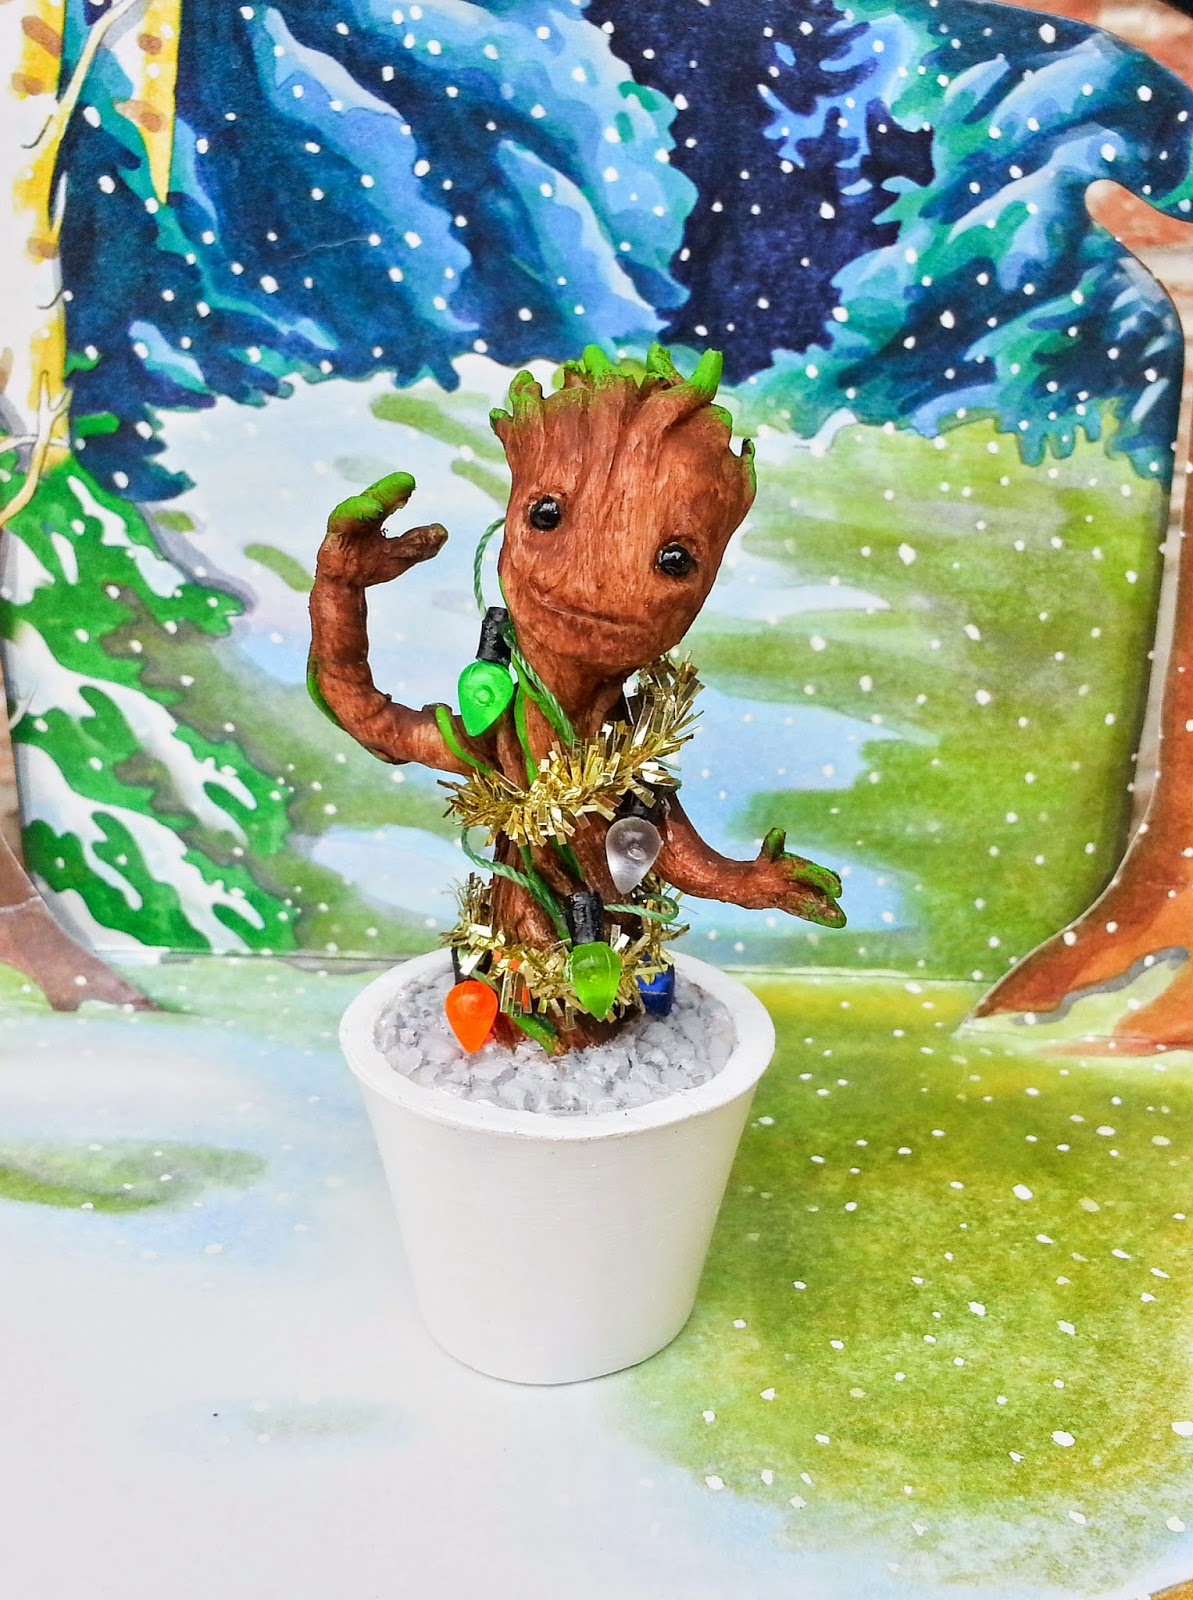 Christmas Baby Groot Guardians of the Galaxy Resin Figure by Motorbot